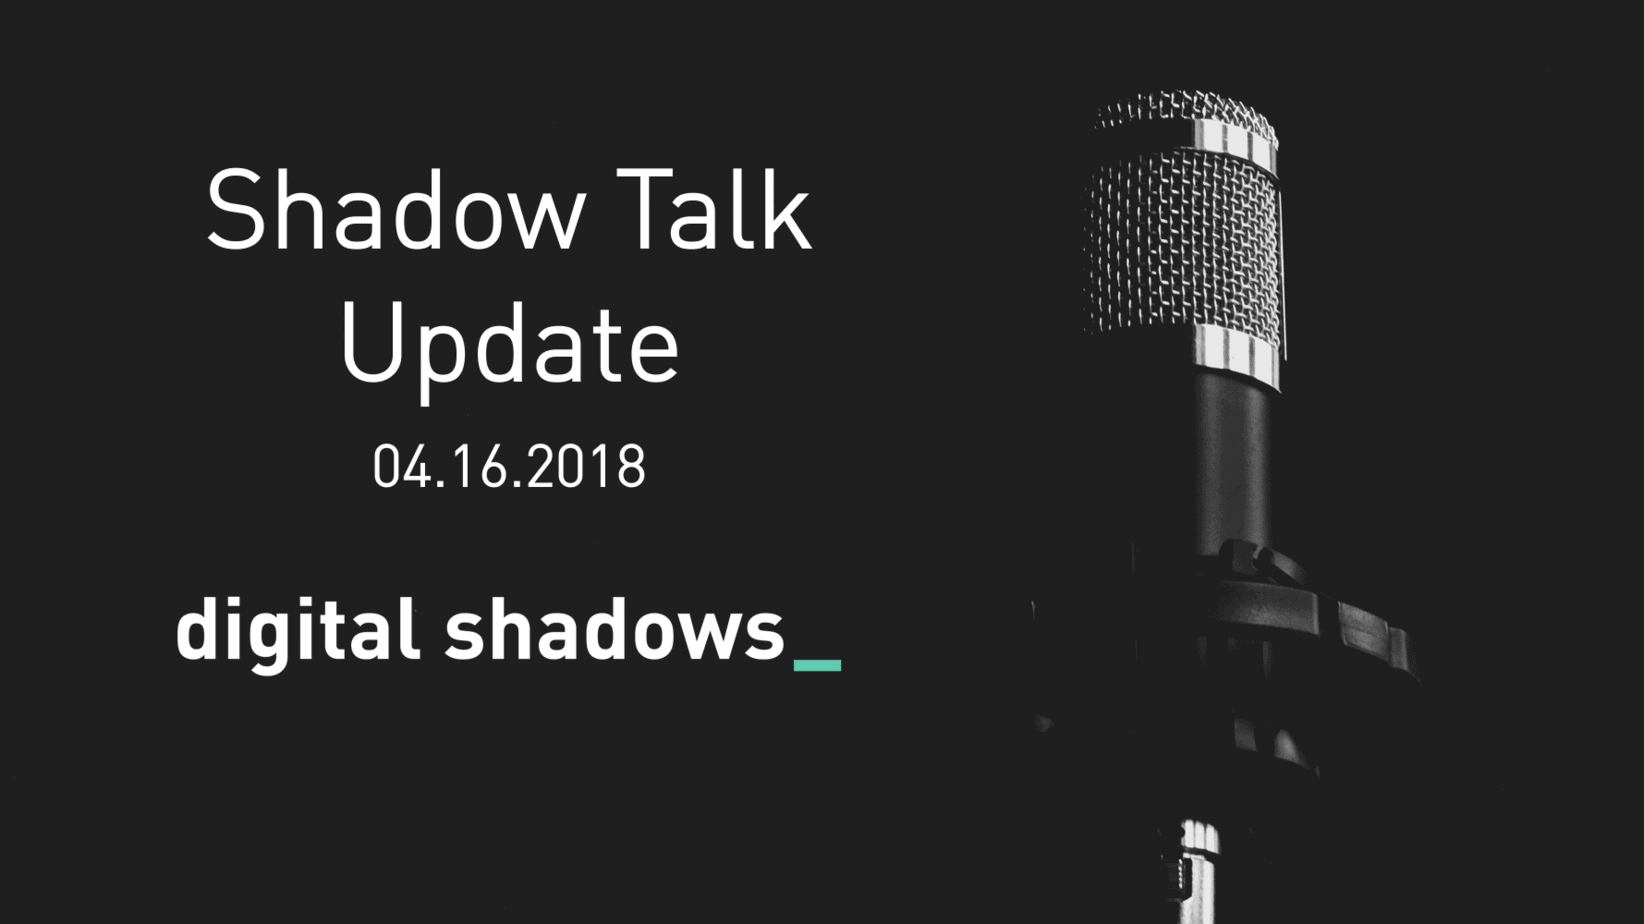 Shadow Talk Update – 04.16.2018